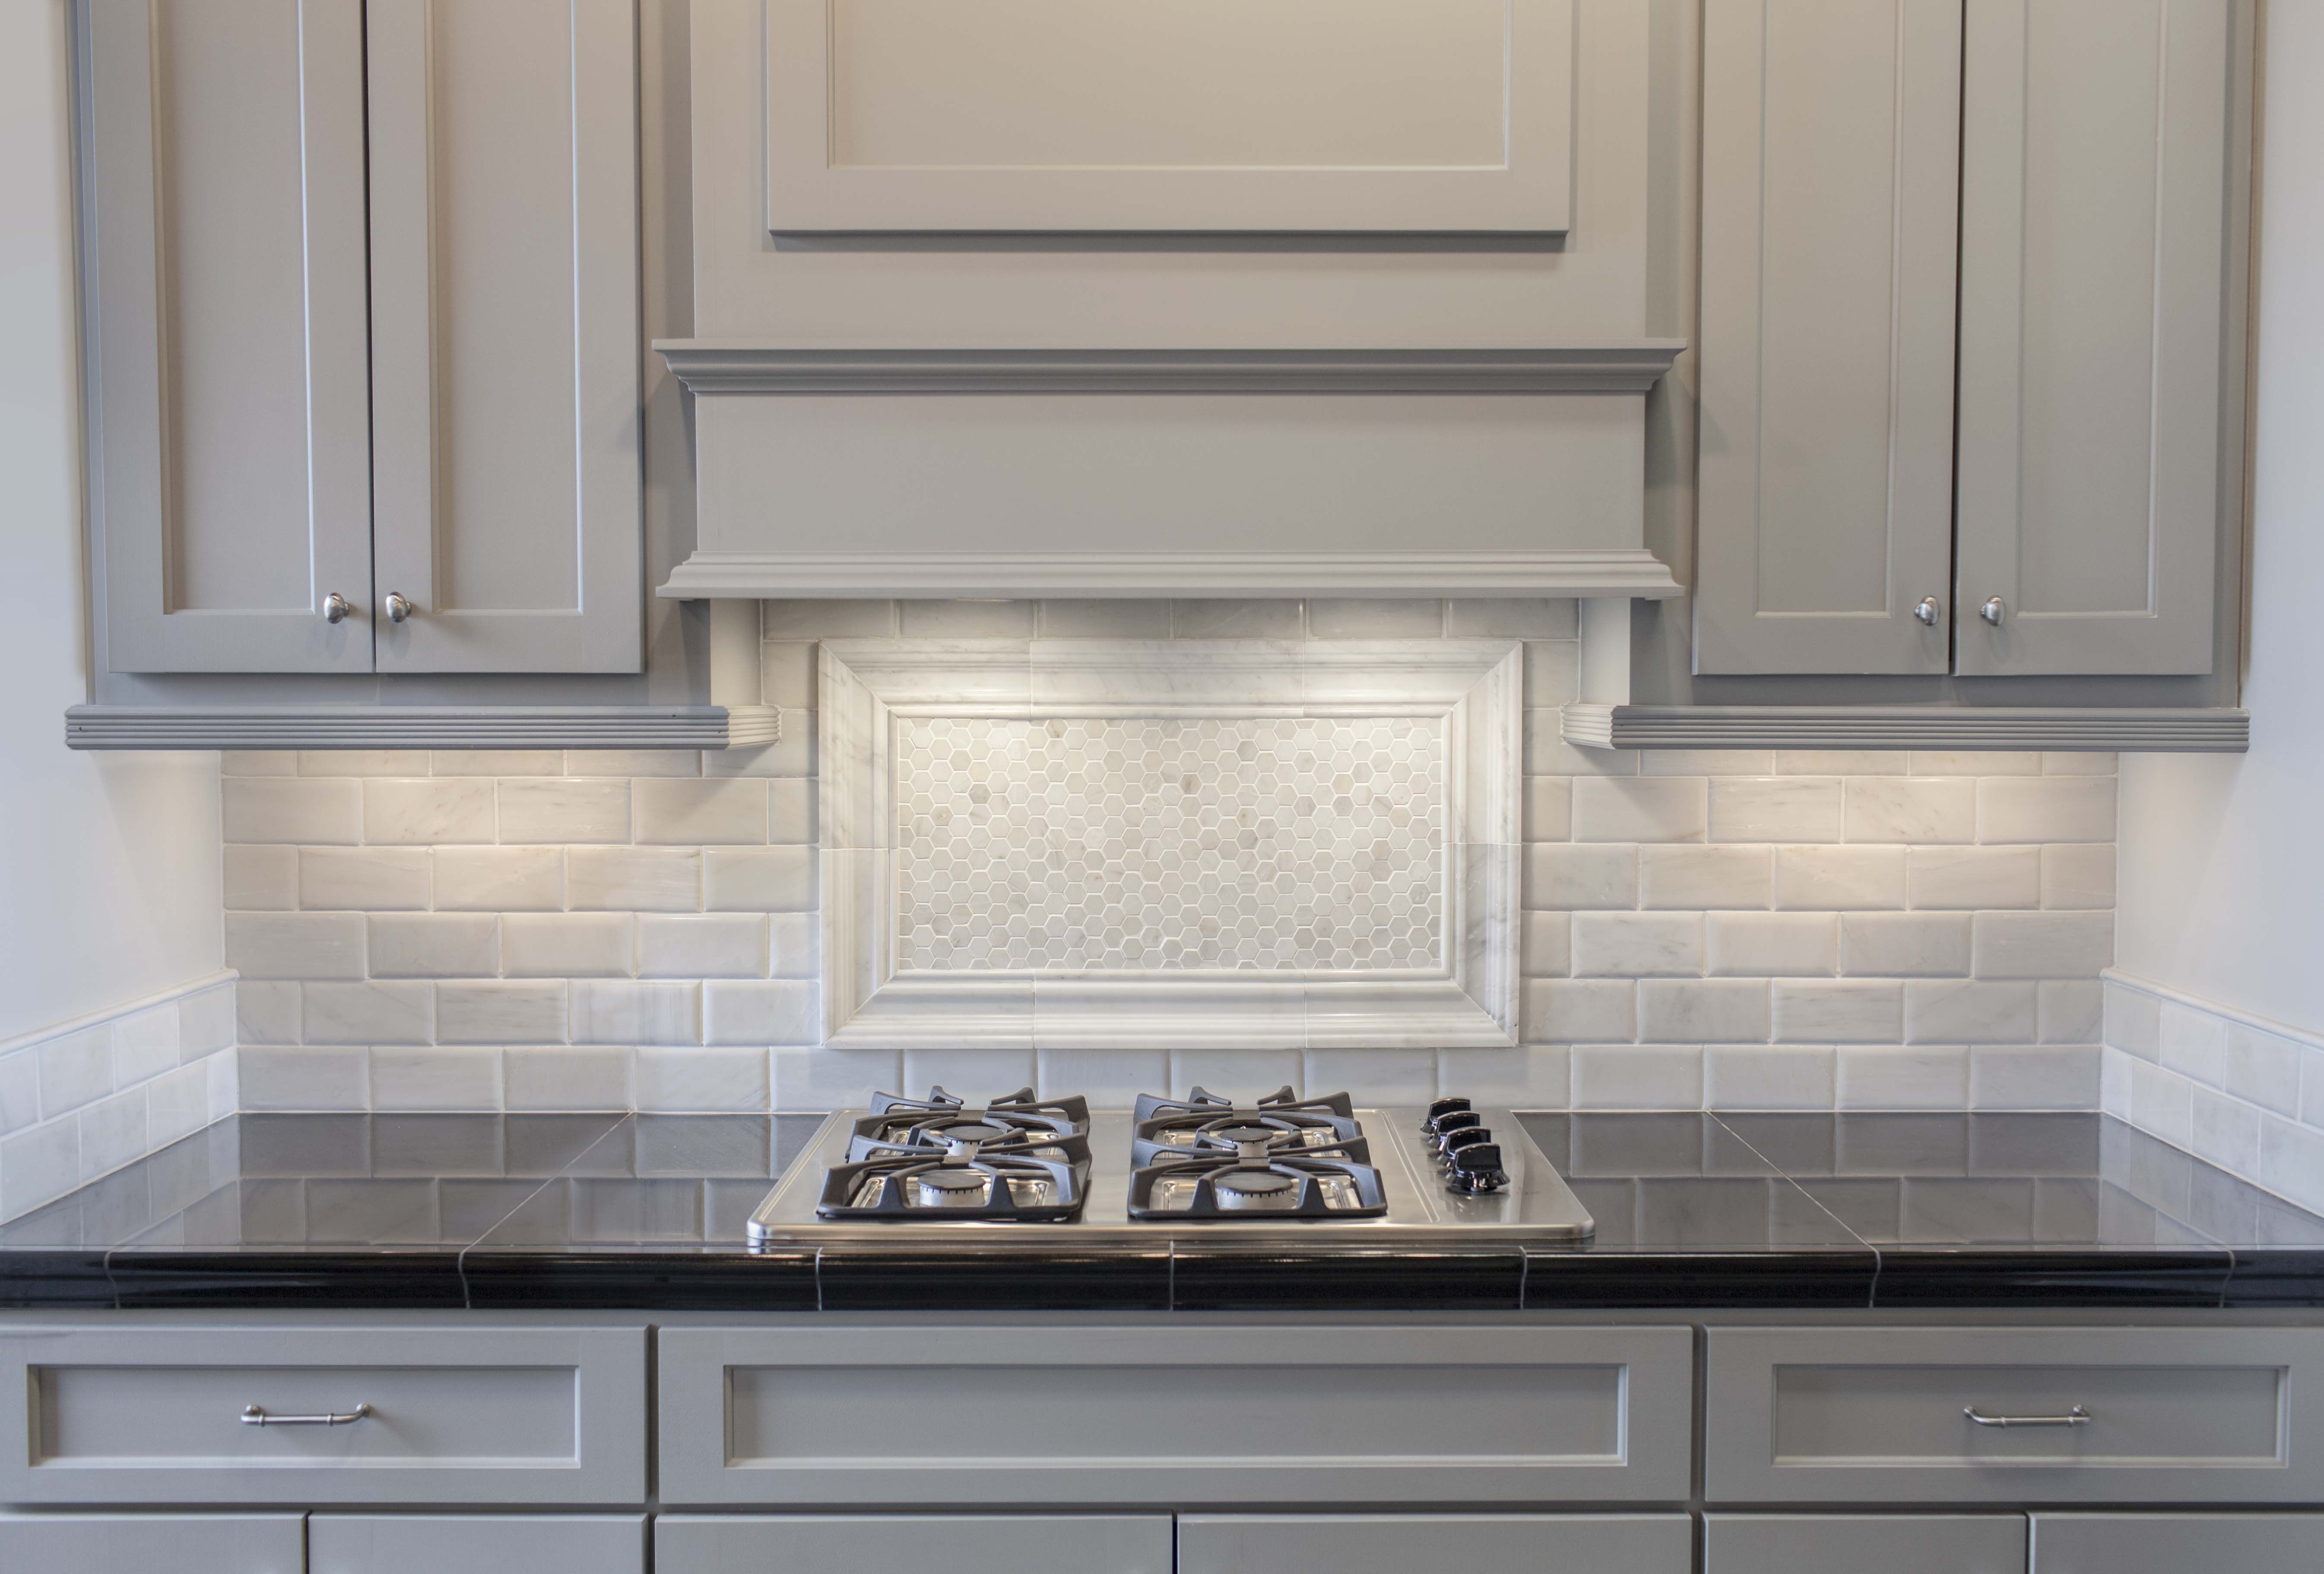 Black And Grey Kitchen Backsplash Grey Painted Cabinets With White Marble Pillowed Subway